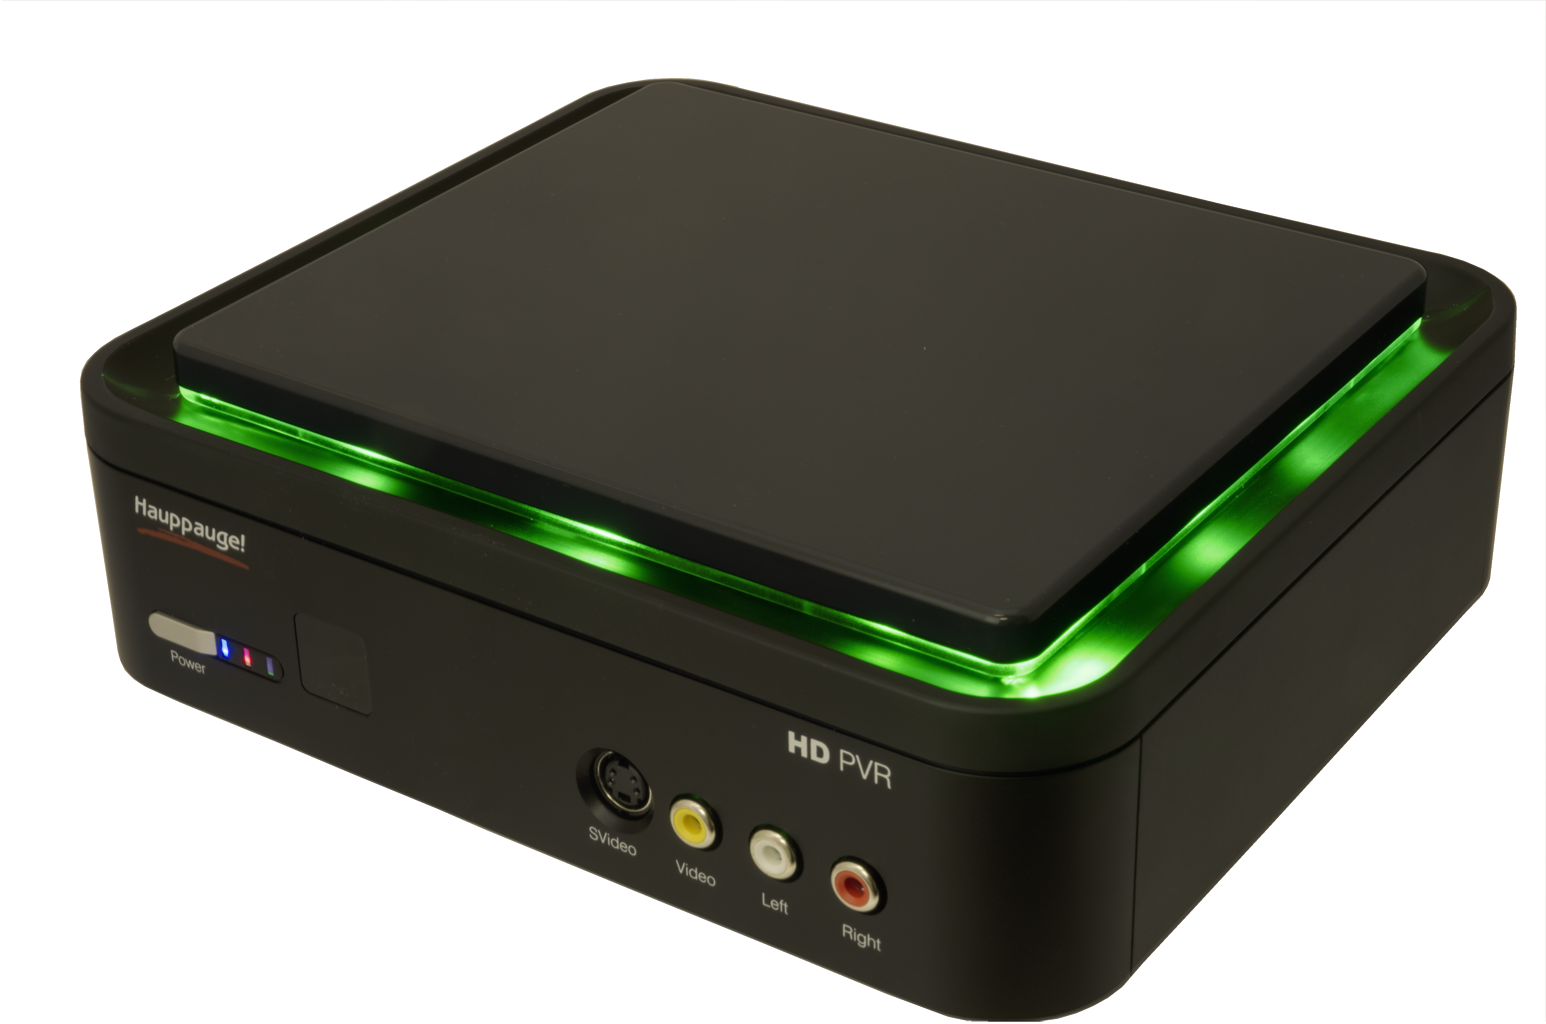 Hauppauge HD PVR Gamer Edition